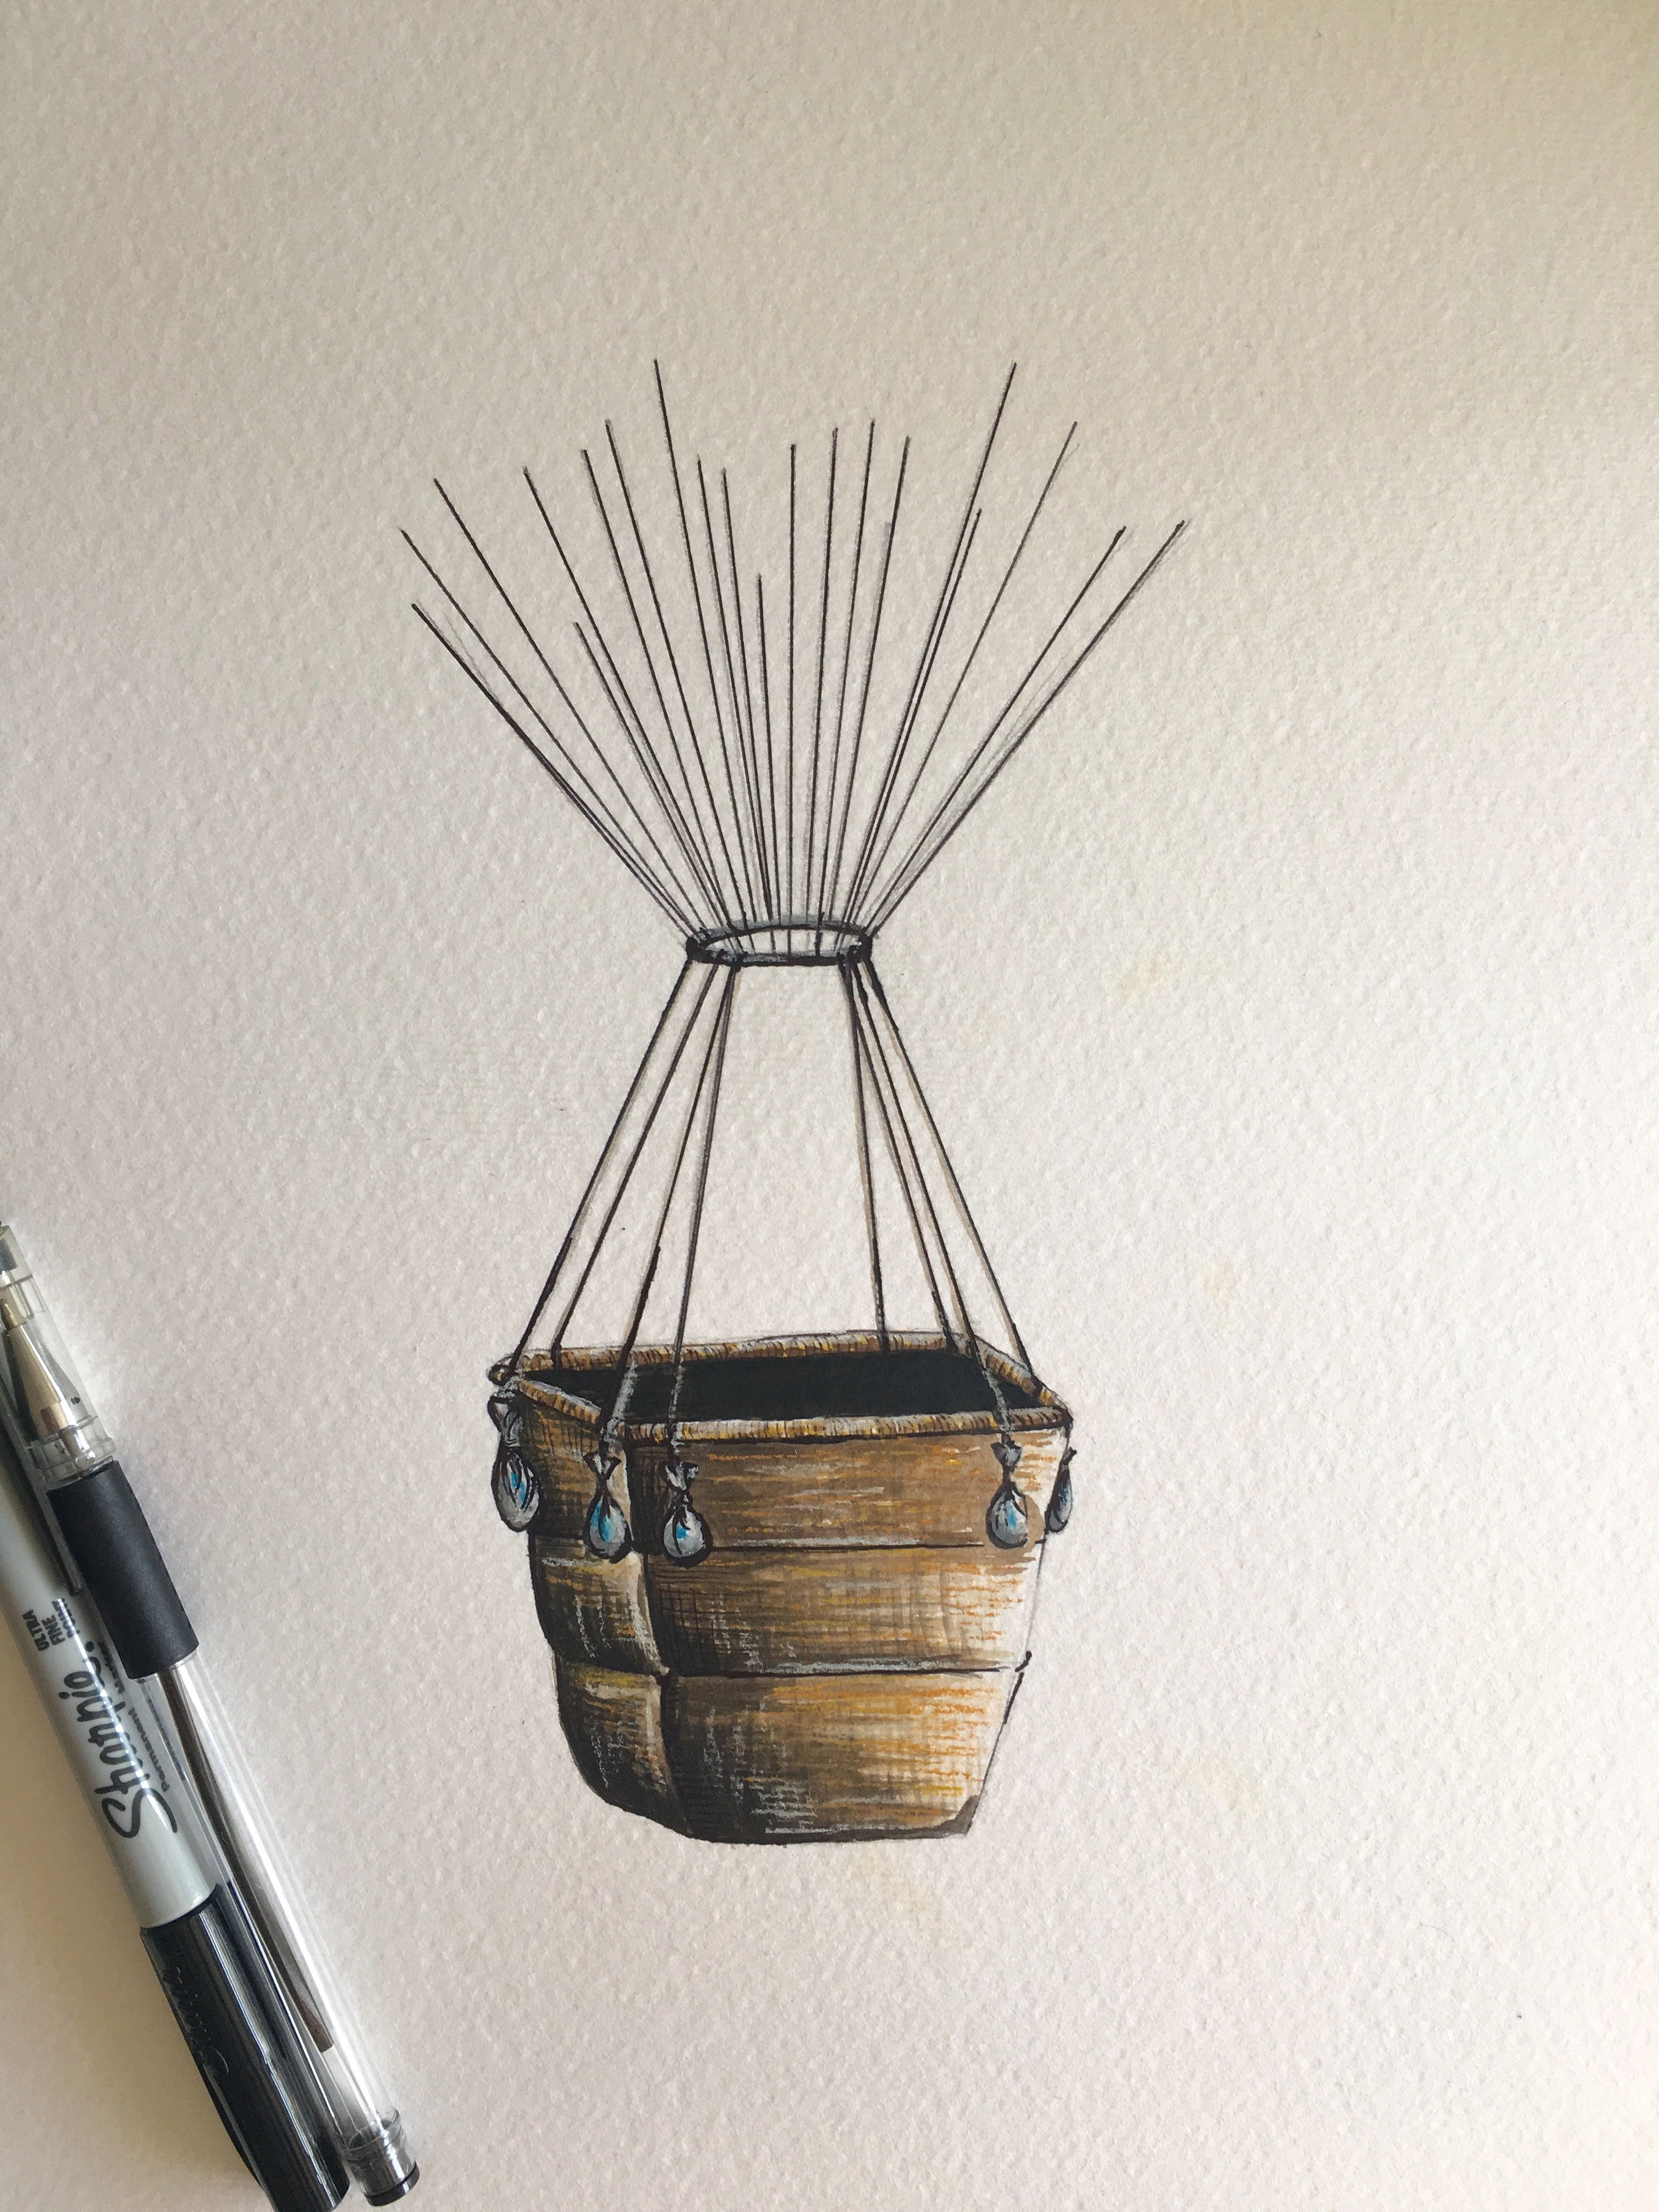 Original Painting Hot Air Balloon Basket A3 Size Makes The